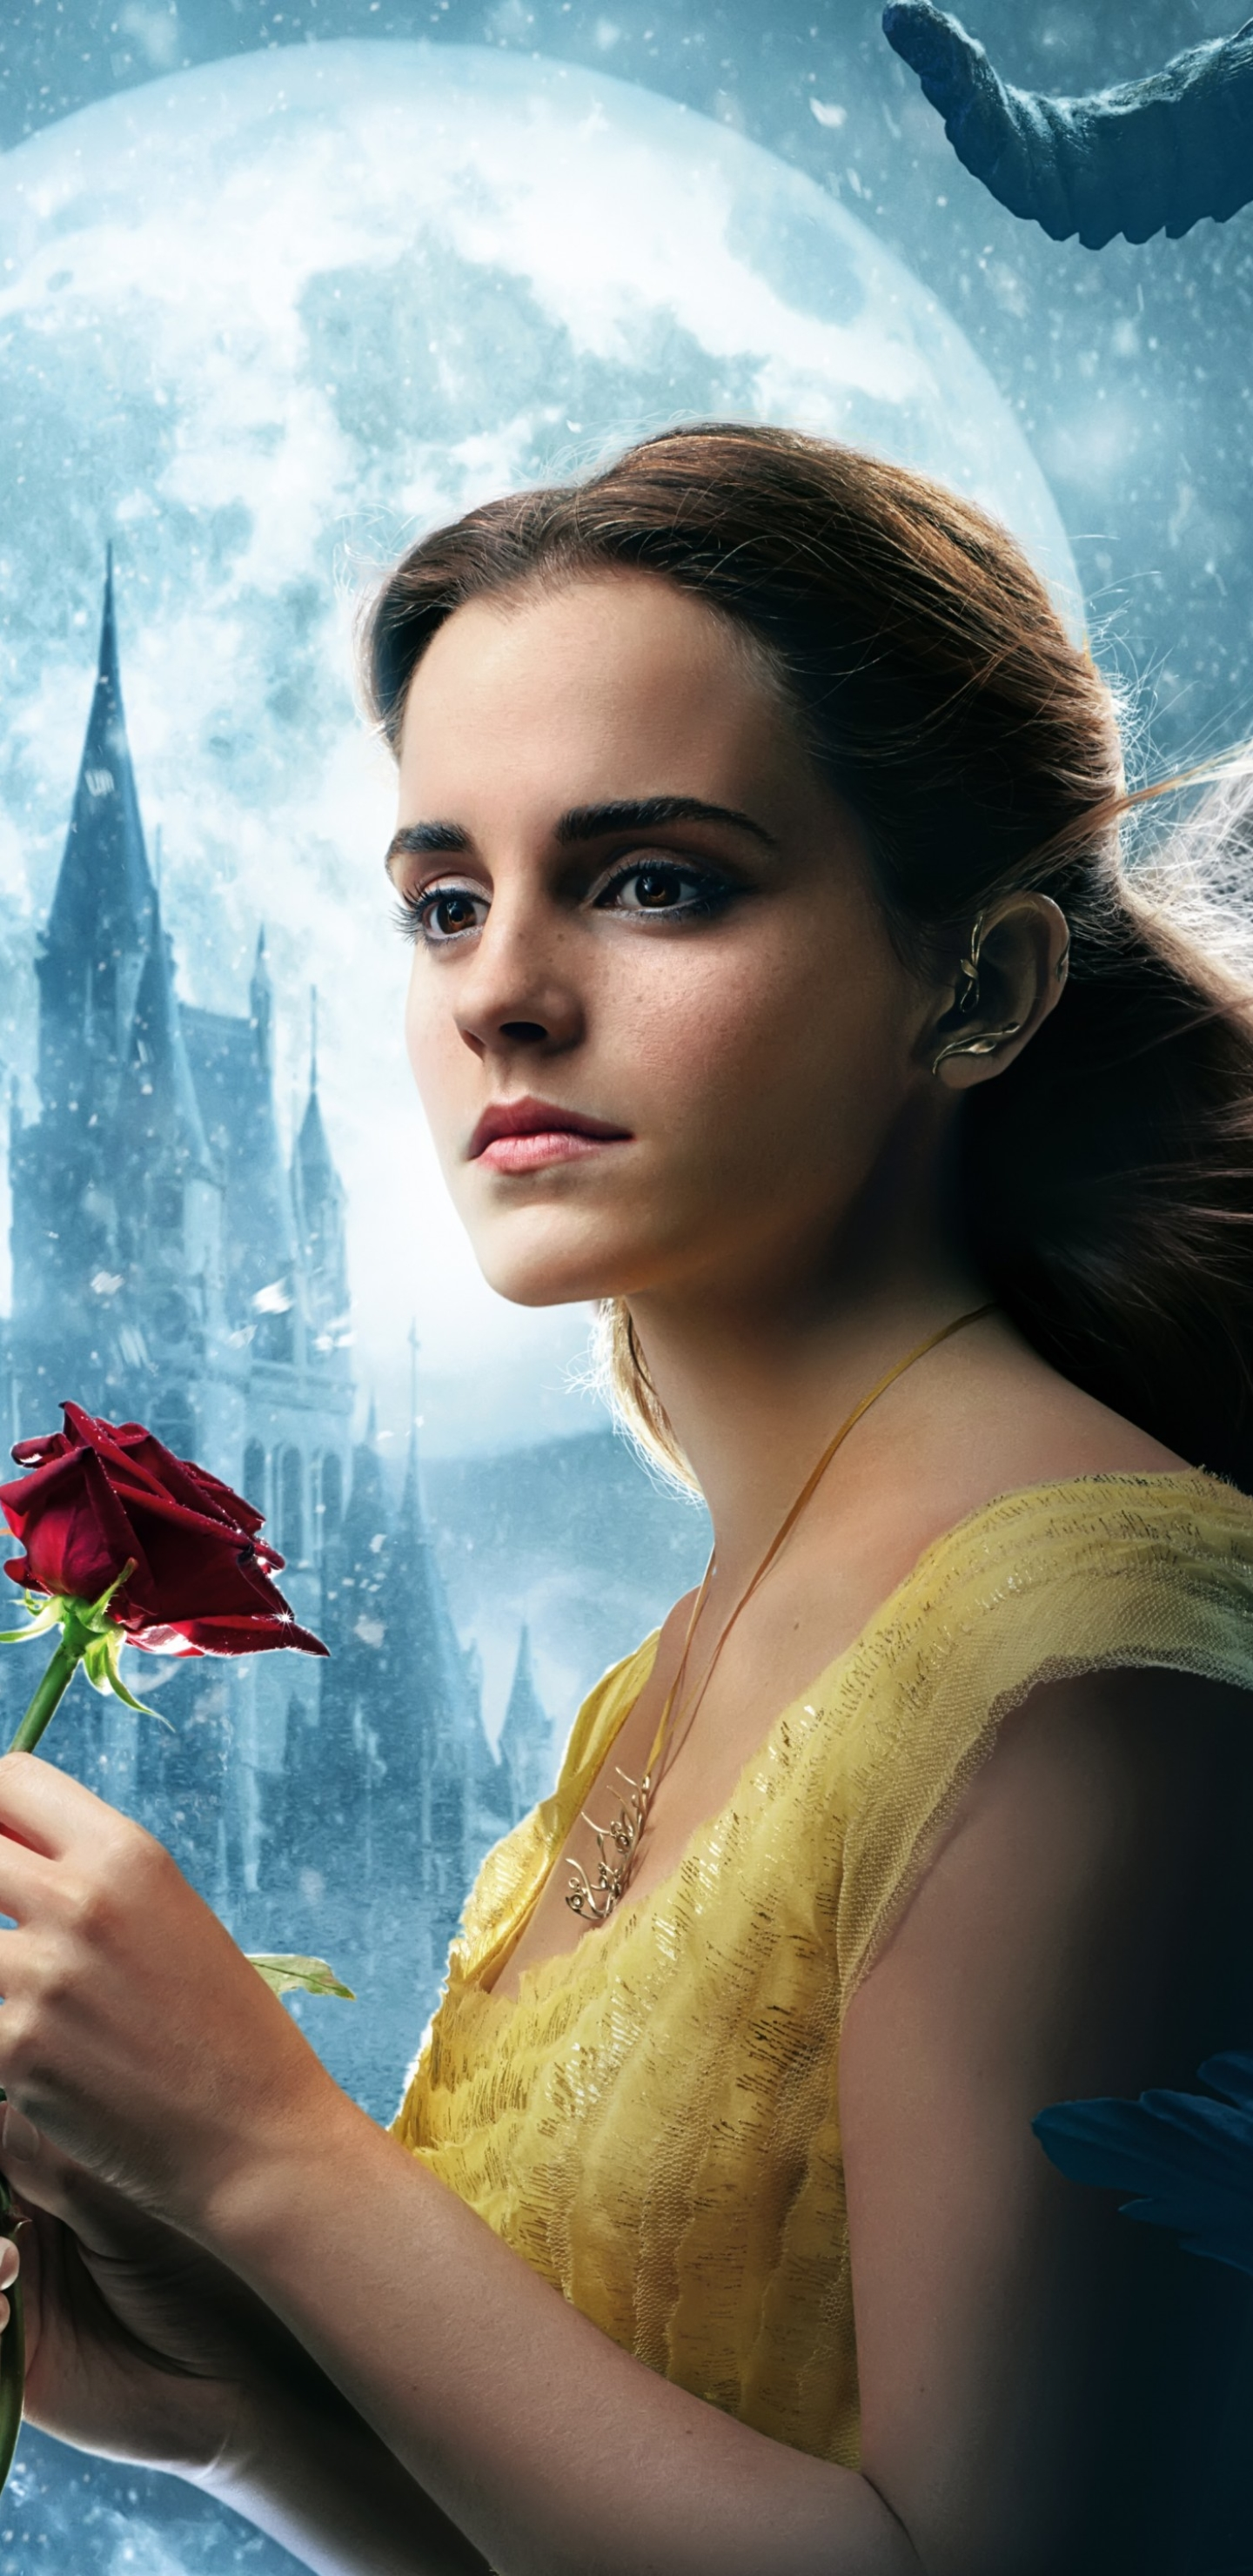 Movie Beauty And The Beast 2017 1440x2960 Wallpaper Id 739202